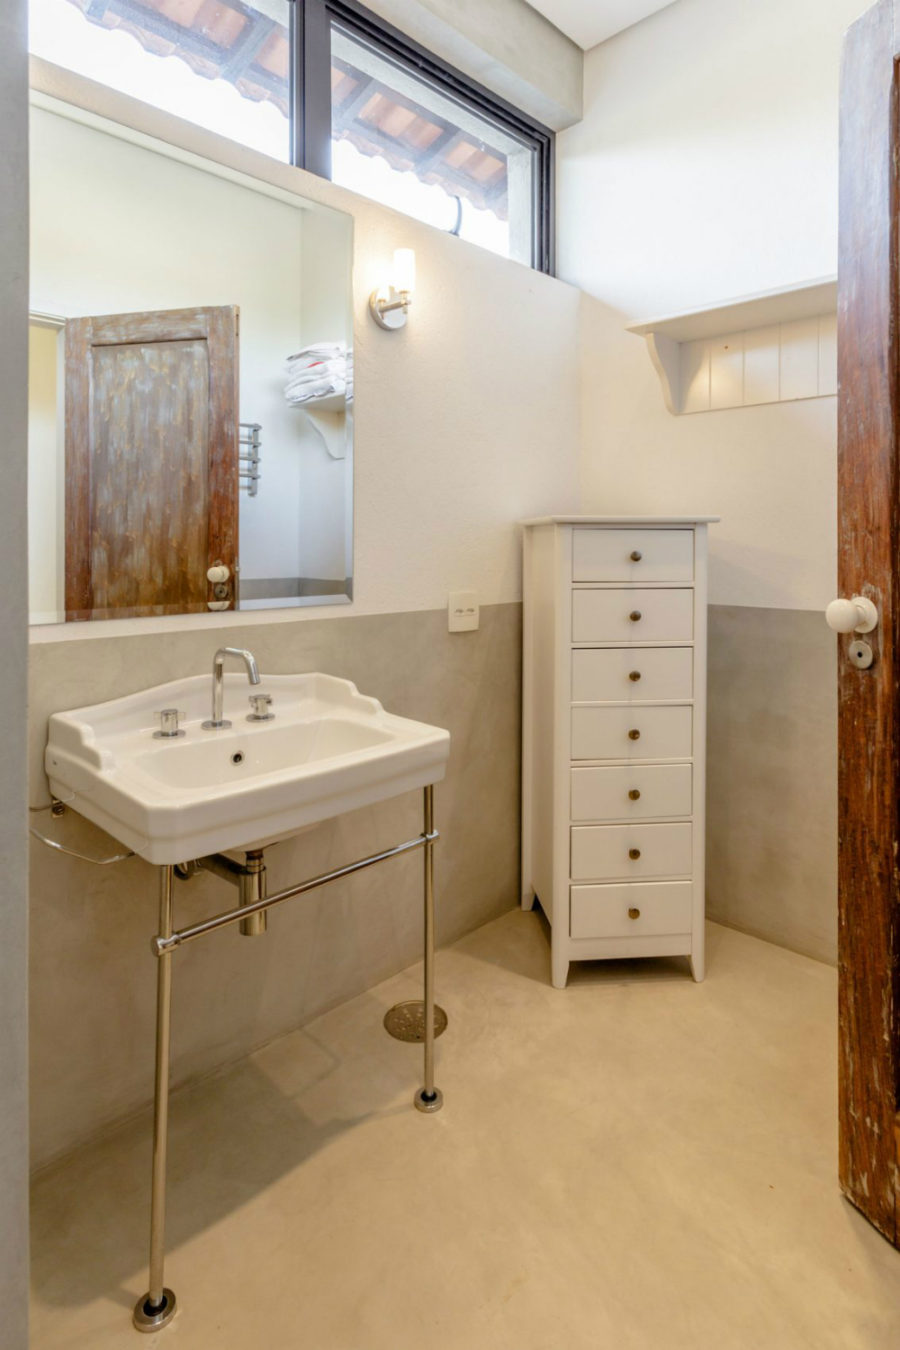 Another bath with a reclaimed wooden door